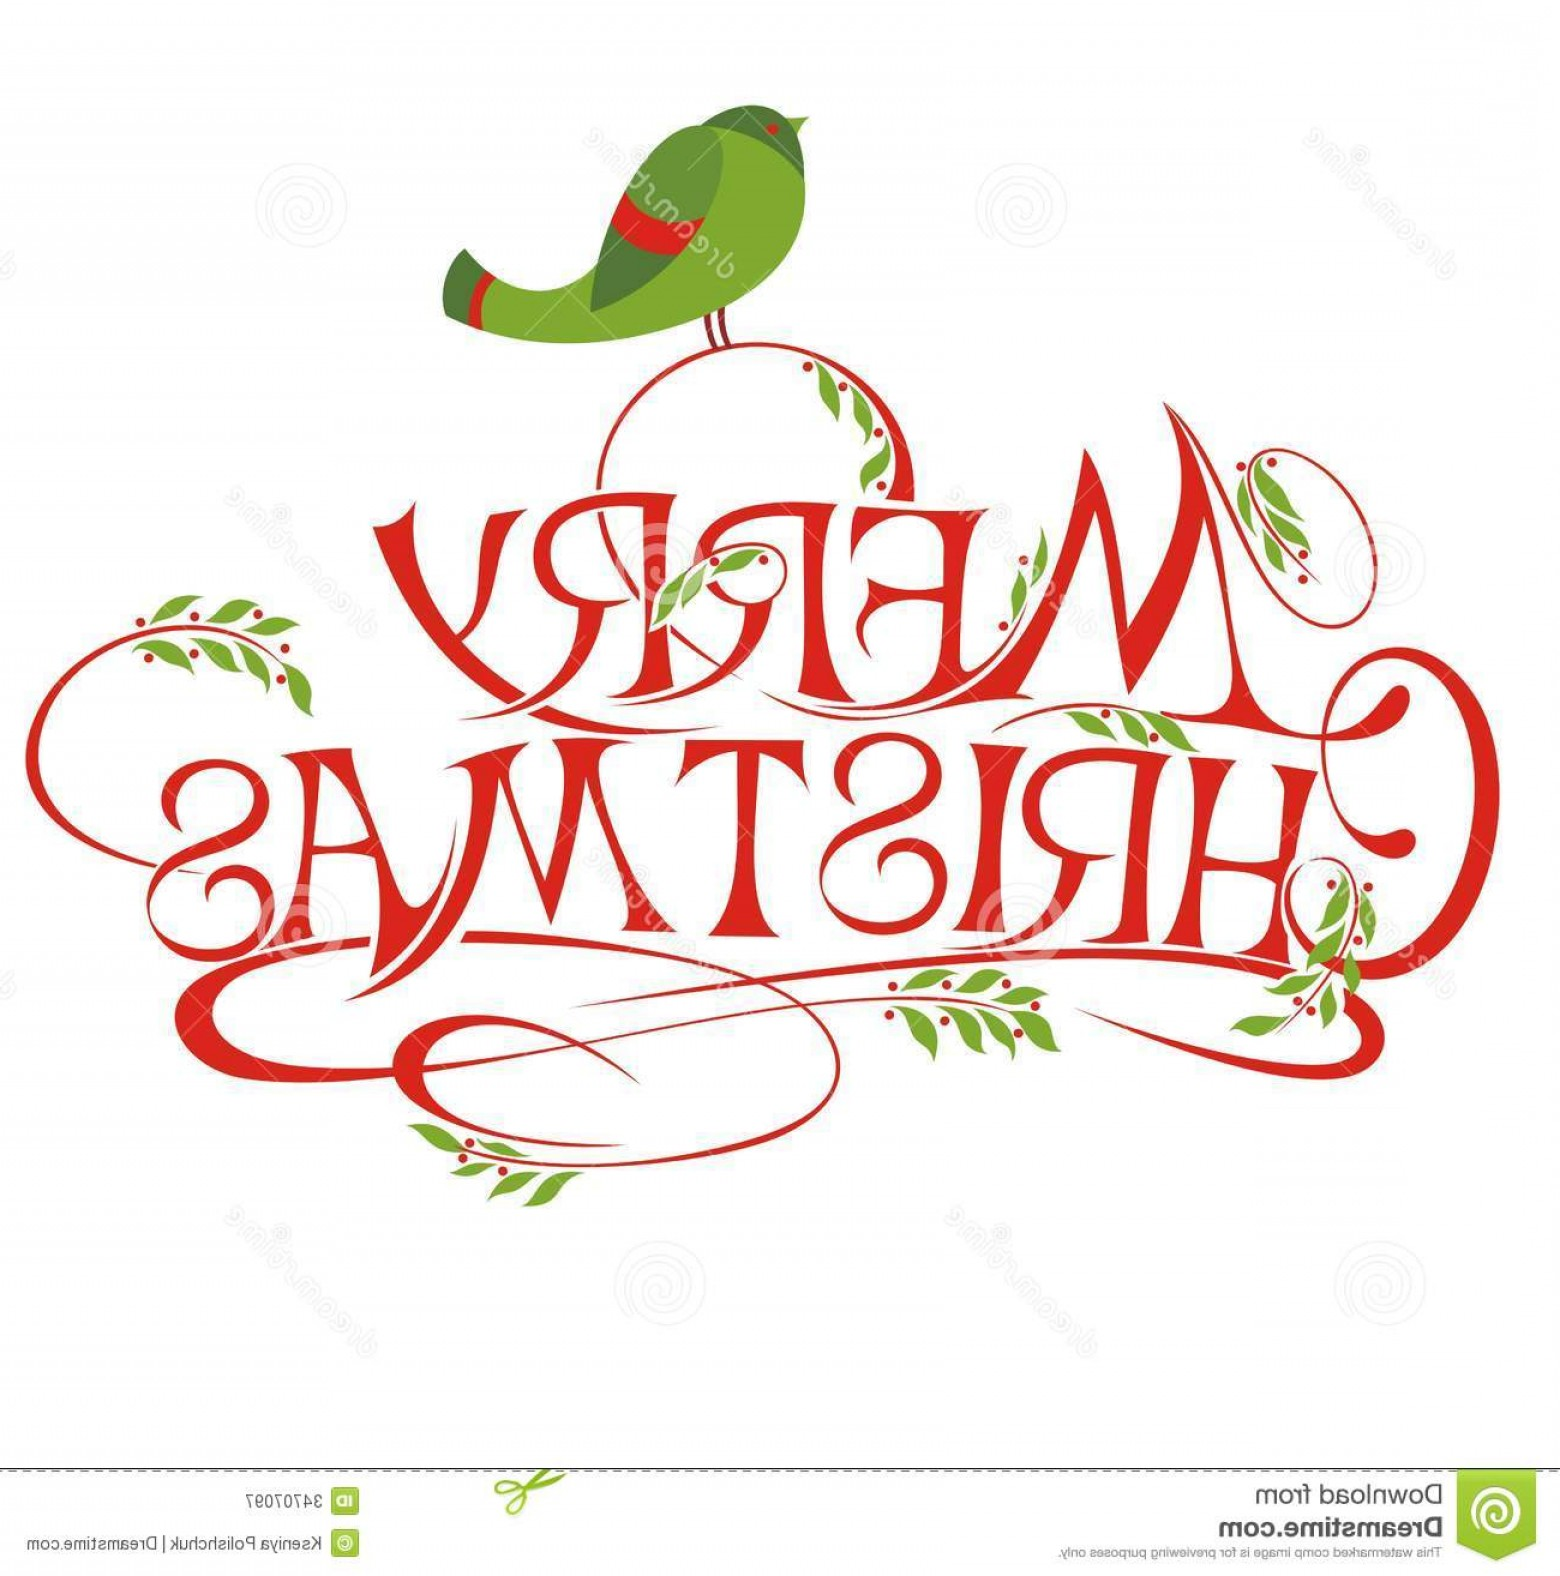 Merry Christmas Vector Graphic: Royalty Free Stock Photography Merry Christmas Vector Calligraphic Lettering Image